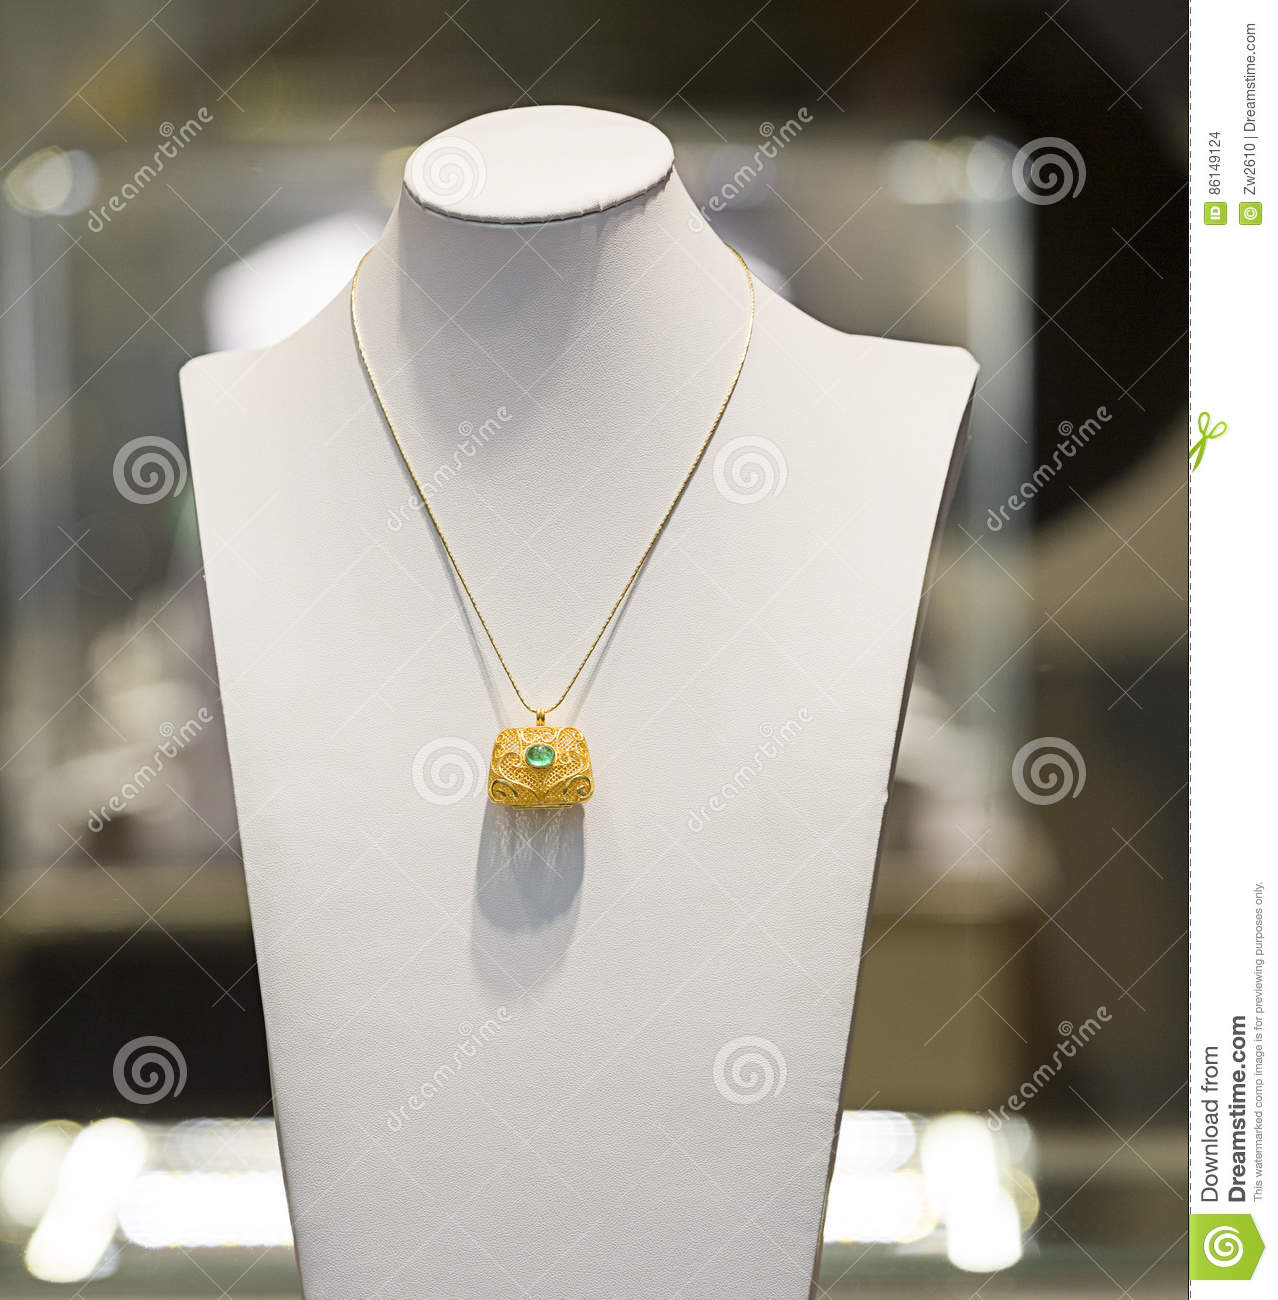 A NECKLACE IN DISPLAY